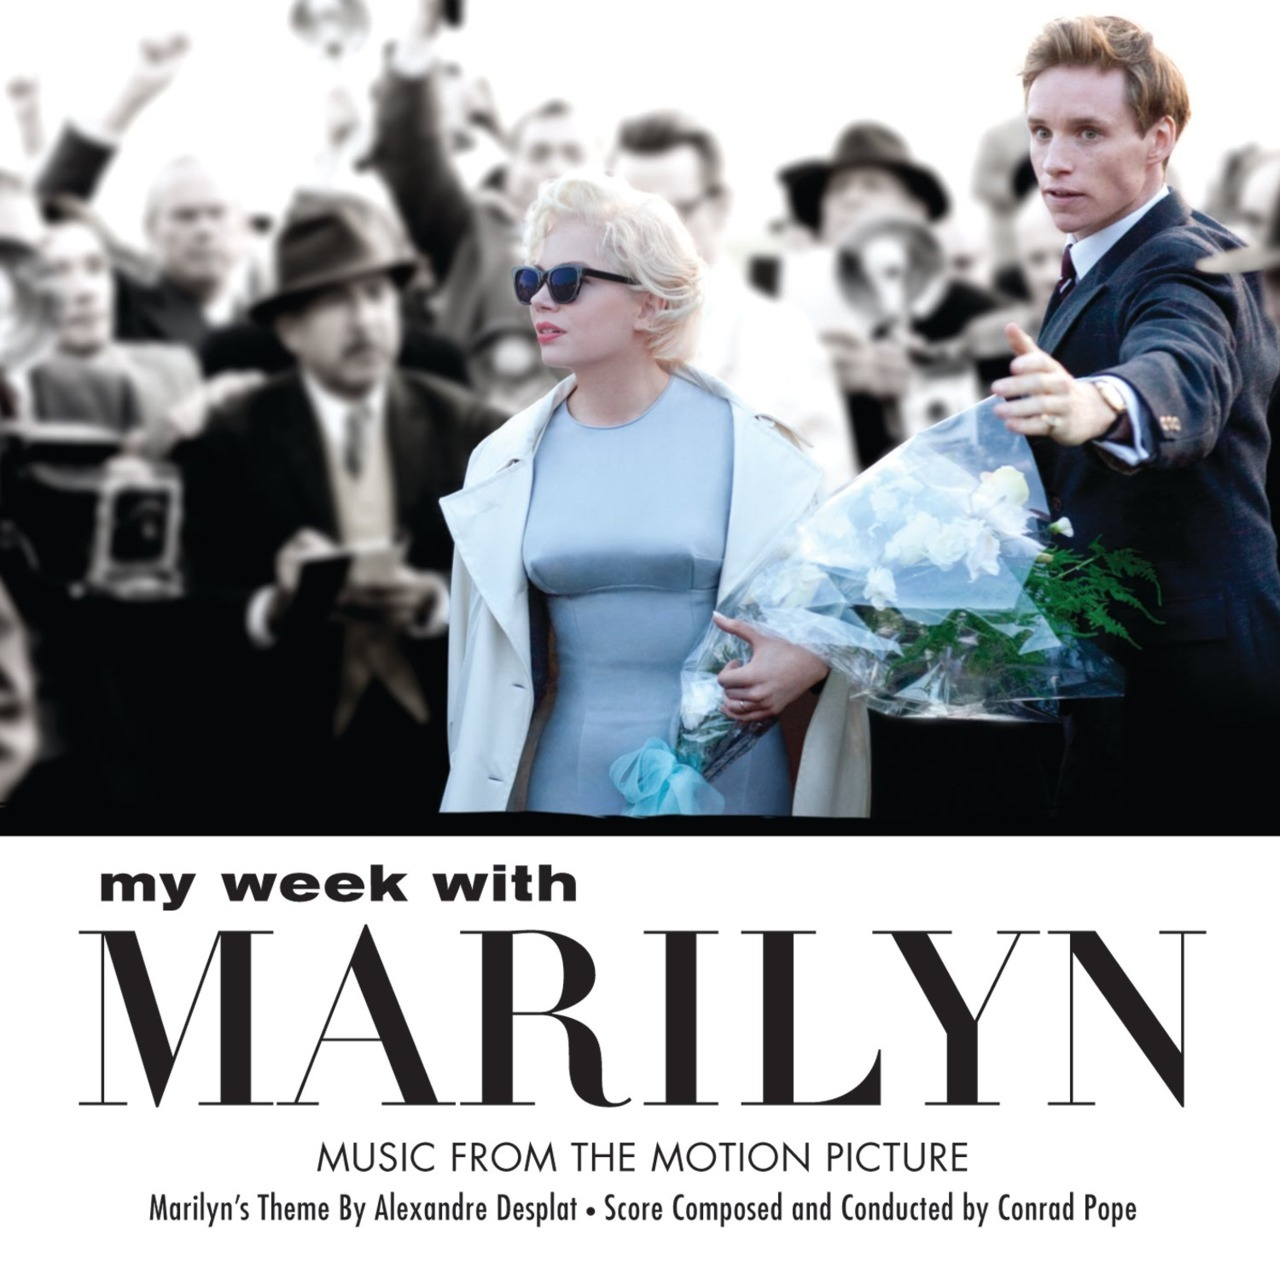 My Week With Marilyn (2011) movie of the night, beautiful just beautiful, and Michelle Williams as Marilyn was a brilliant idea.